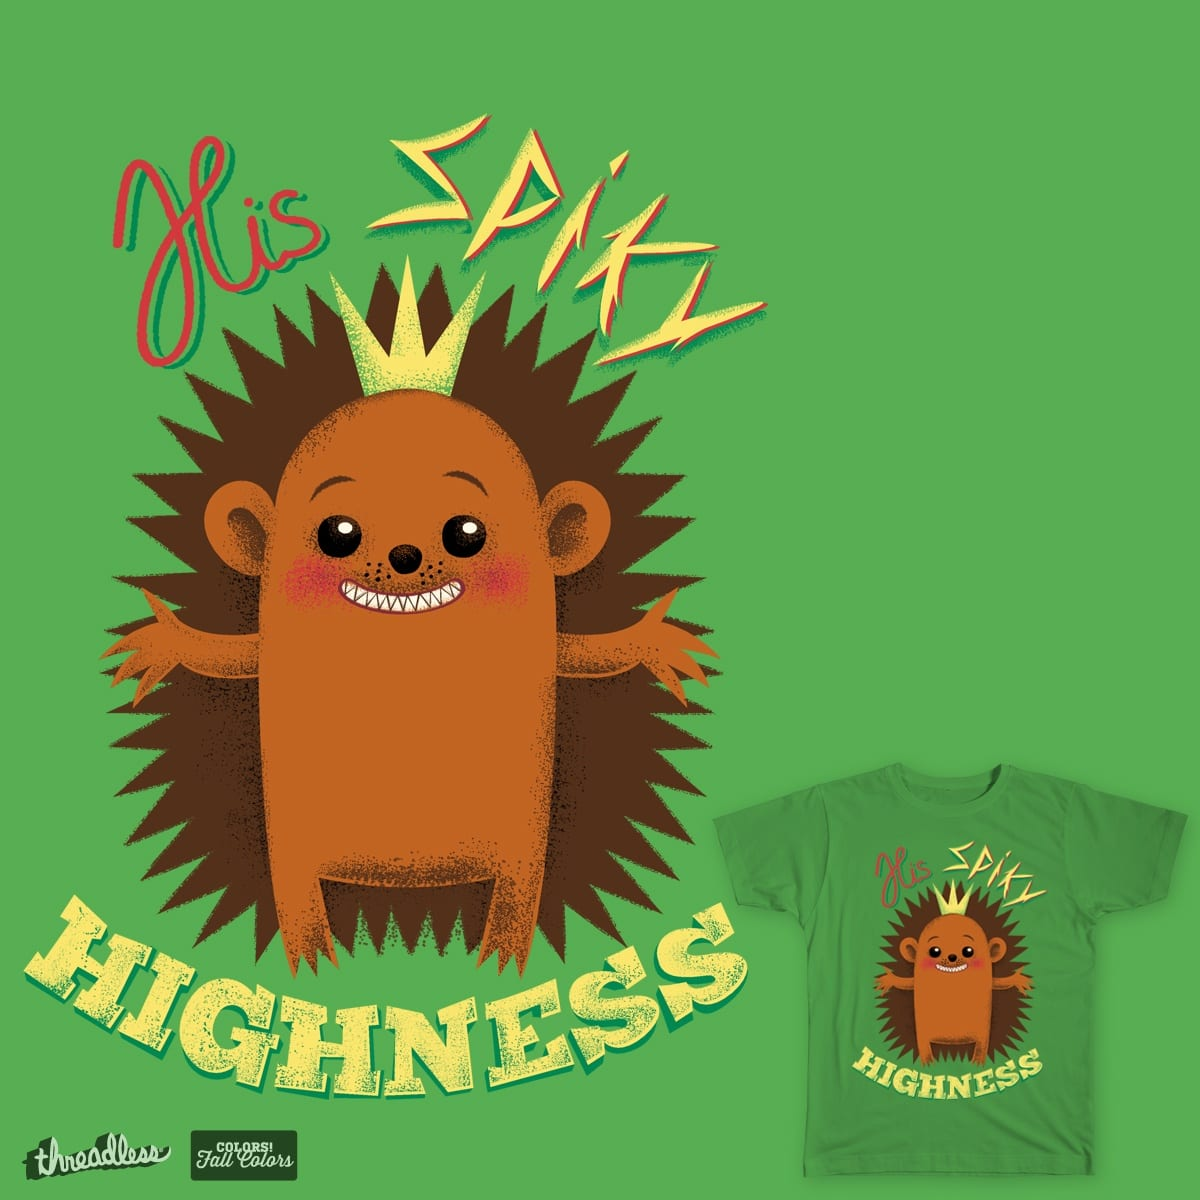 His Spiky Highness by deadsquirrel on Threadless